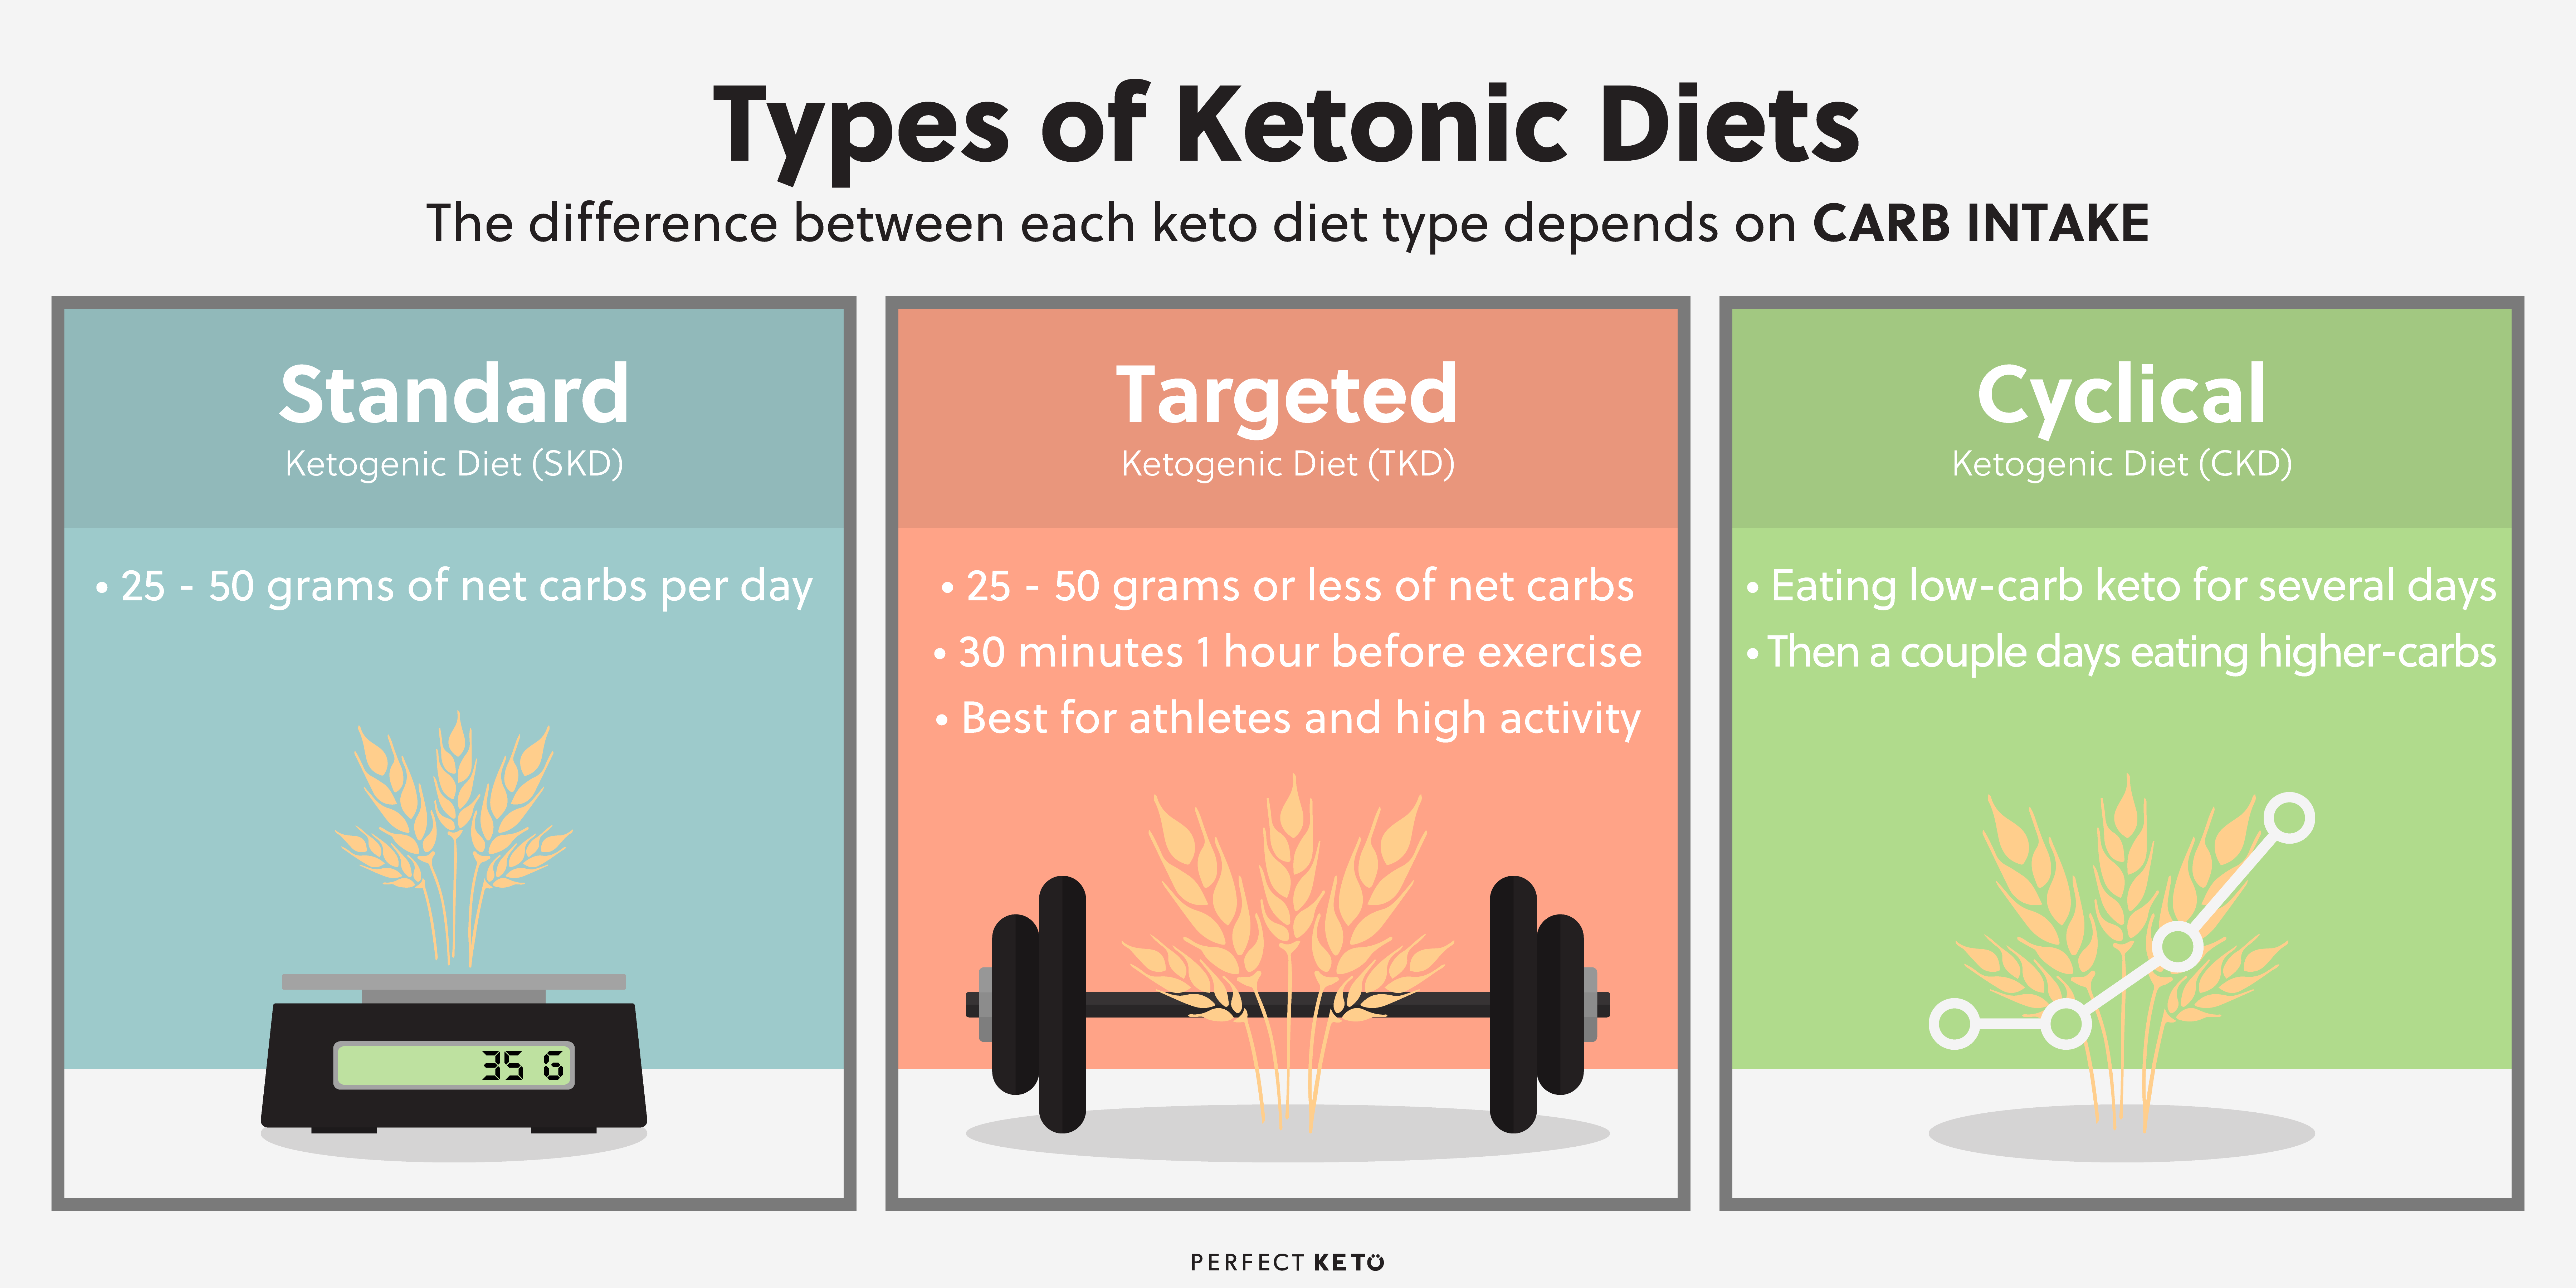 types-of-ketonic-diets.png